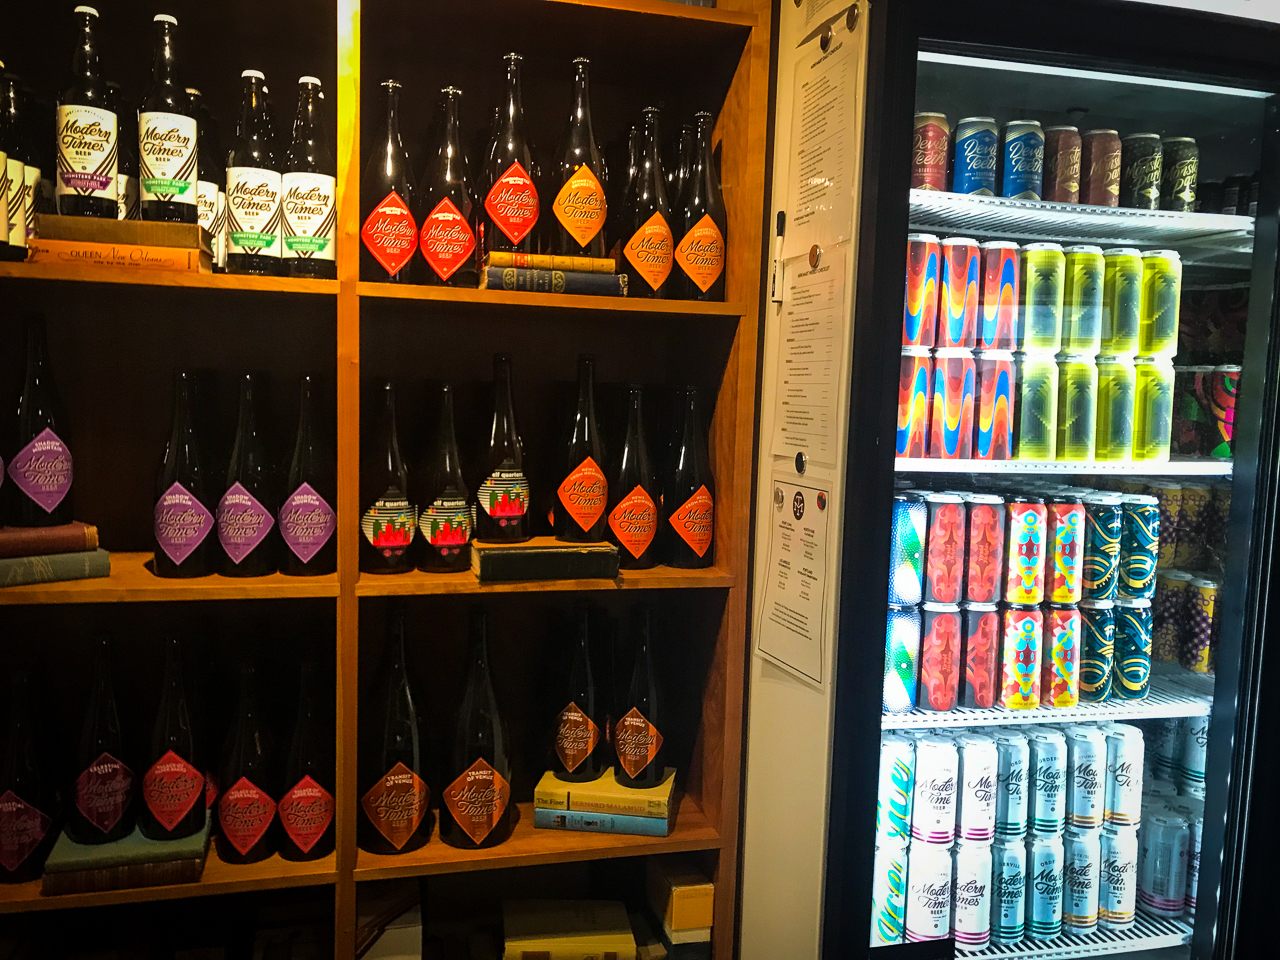 Modern Times Flavordome Bottle Selection